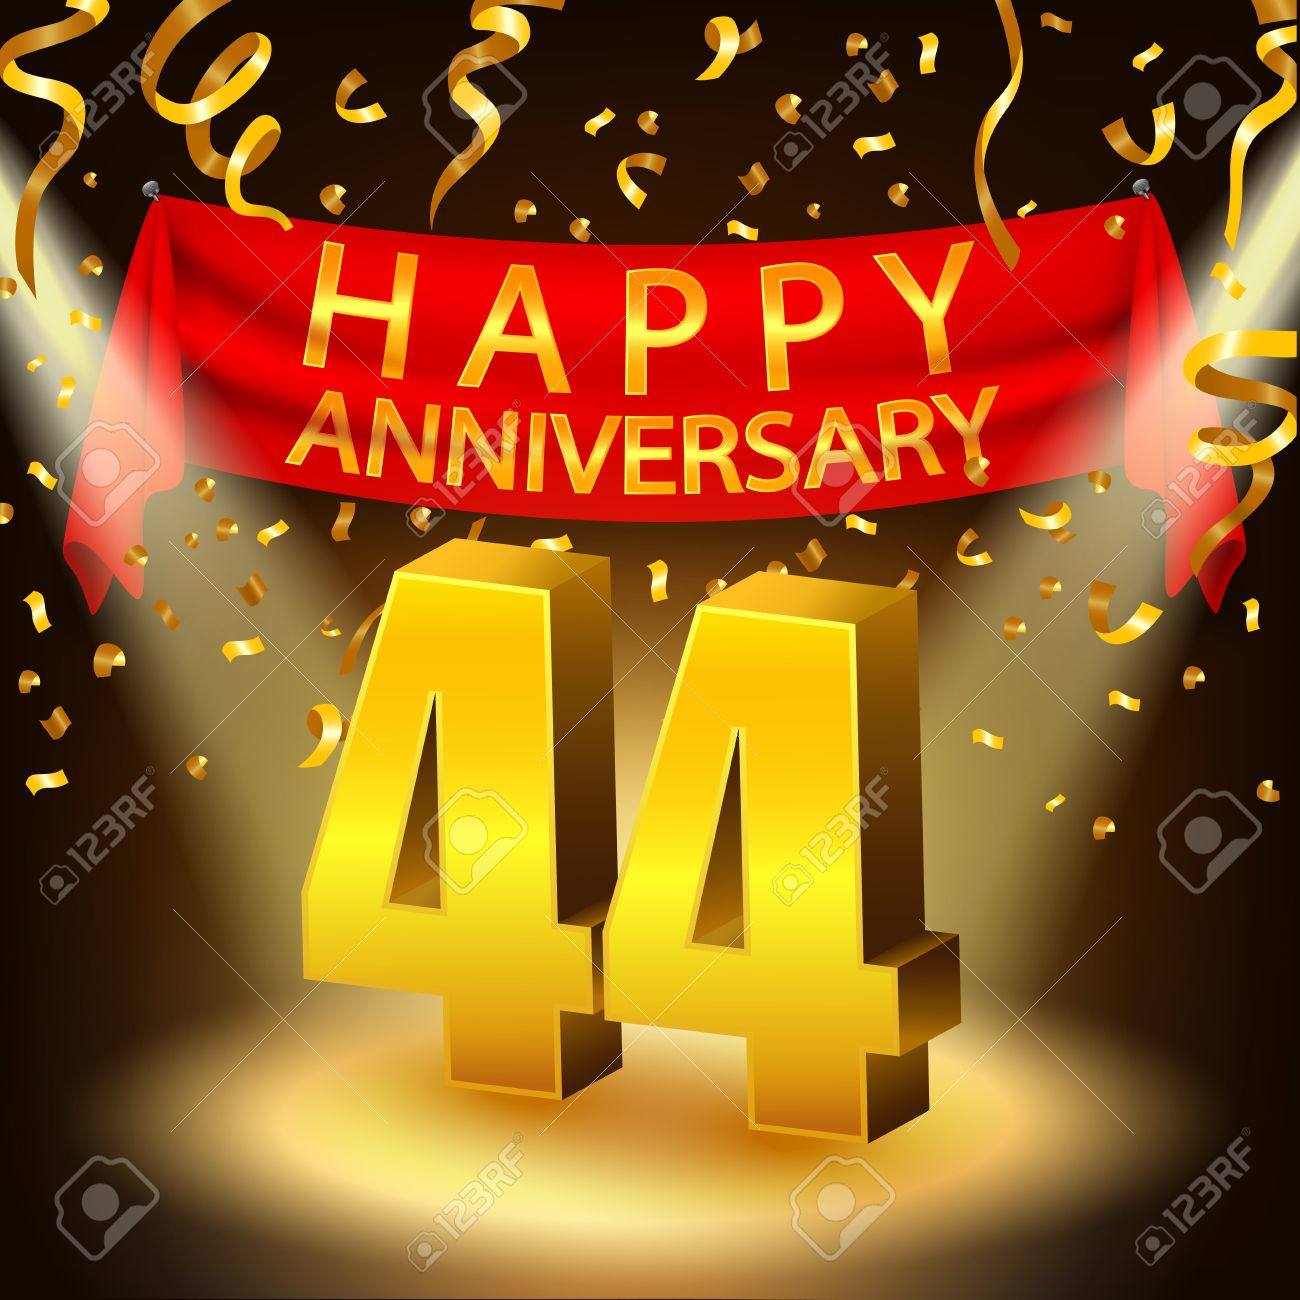 Happy 44th anniversary celebration with golden confetti and happy 44th anniversary celebration with golden confetti and spotlight stock vector 49921629 biocorpaavc Gallery